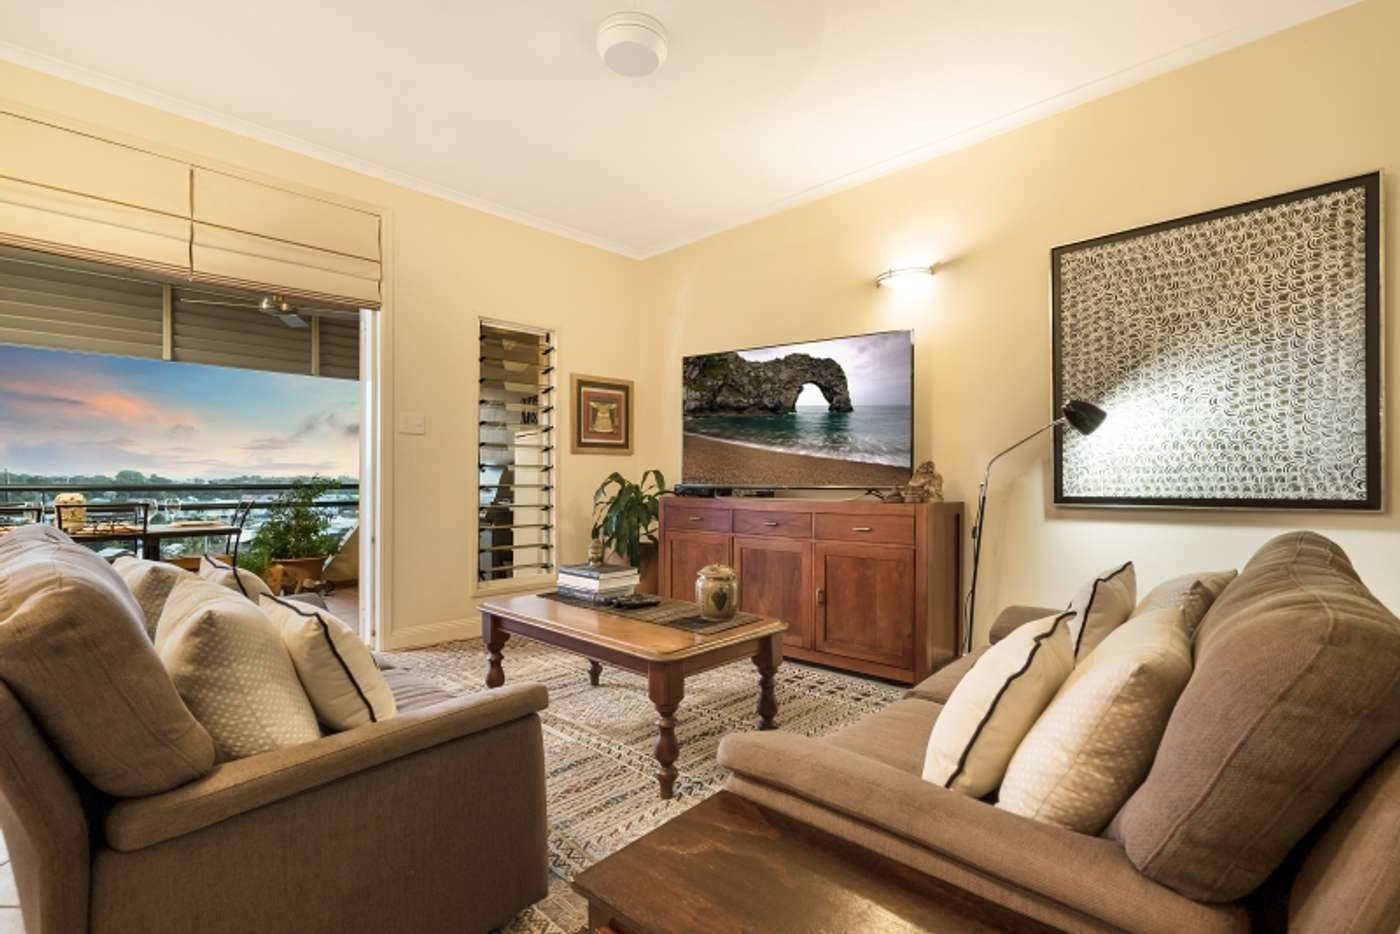 Fifth view of Homely apartment listing, 20/12 Paspaley Place, Larrakeyah NT 820